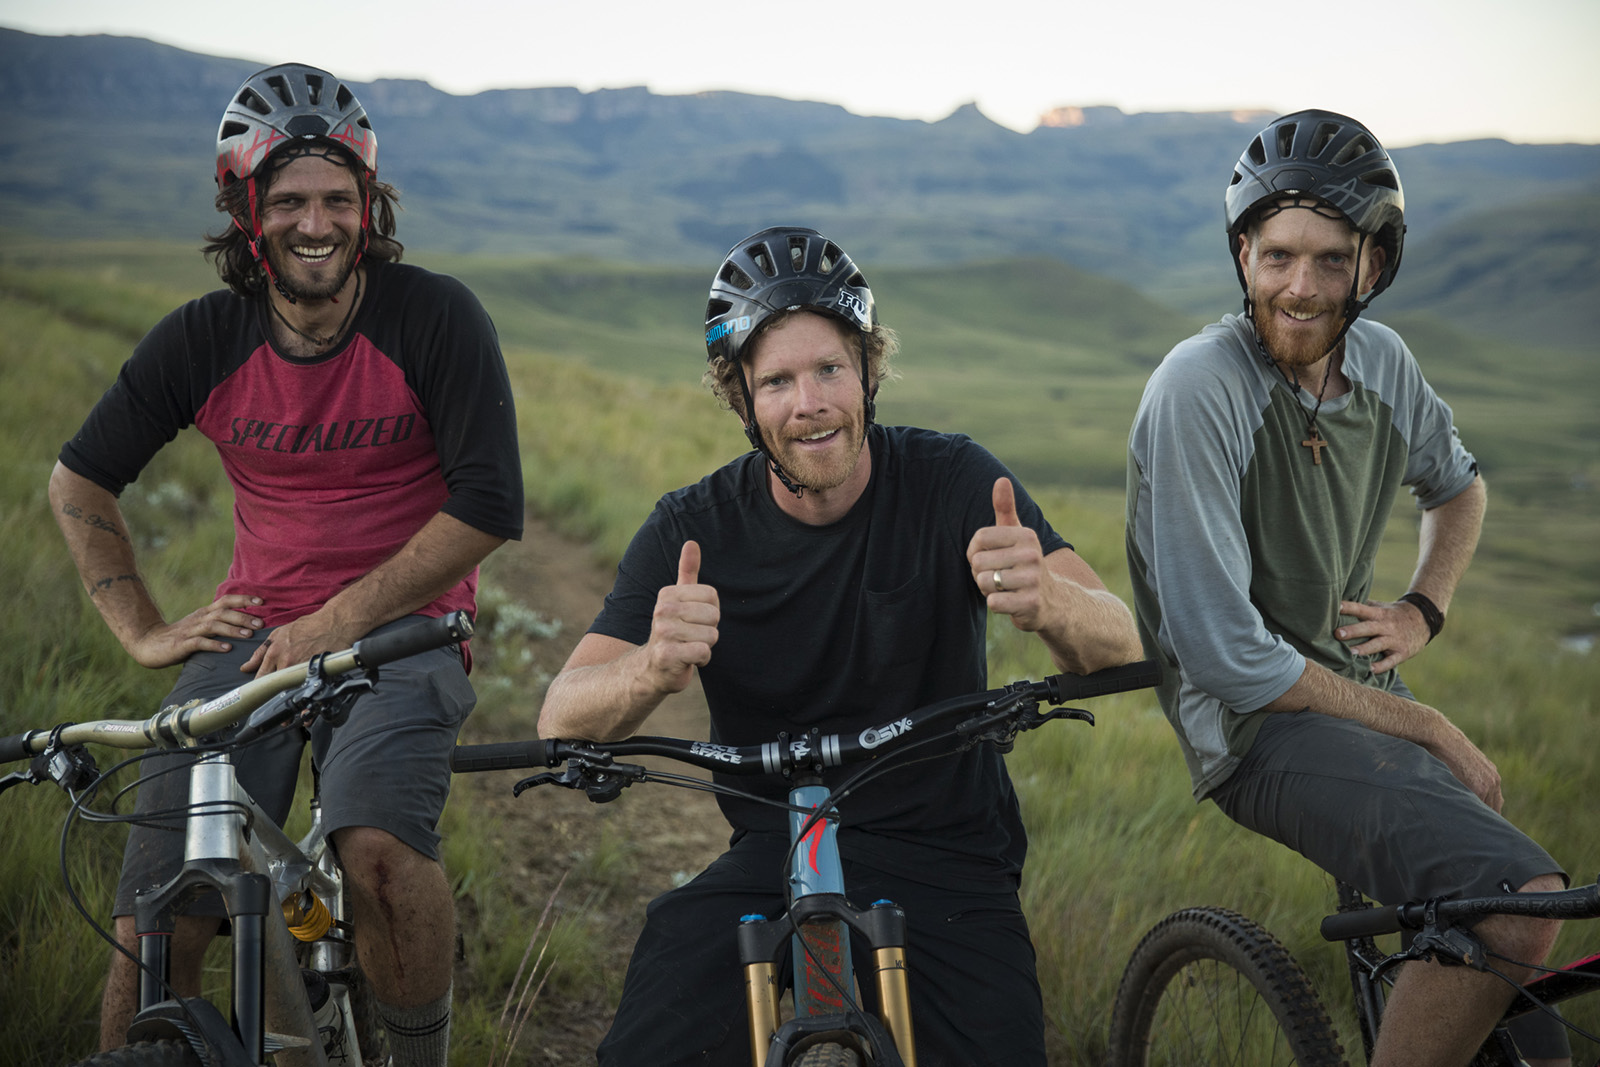 Matt Hunter rides with locals Hylton Turvey and Fanie Kok on the trails in the Karkloof and Drakensberg Range of South Africa